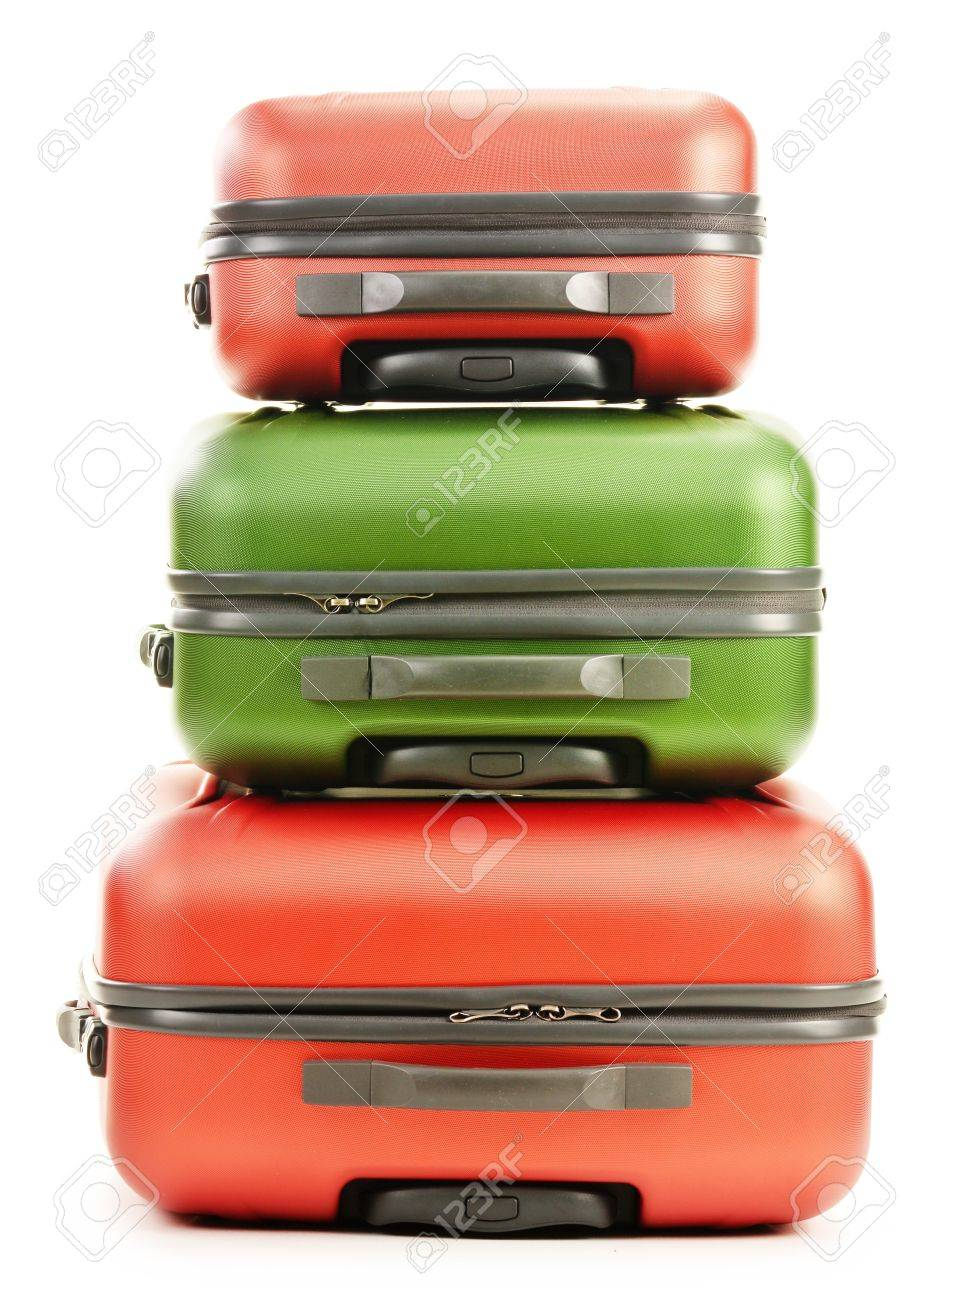 Luggage consisting of three polycarbonate suitcases isolated on white Stock Photo - 18755441